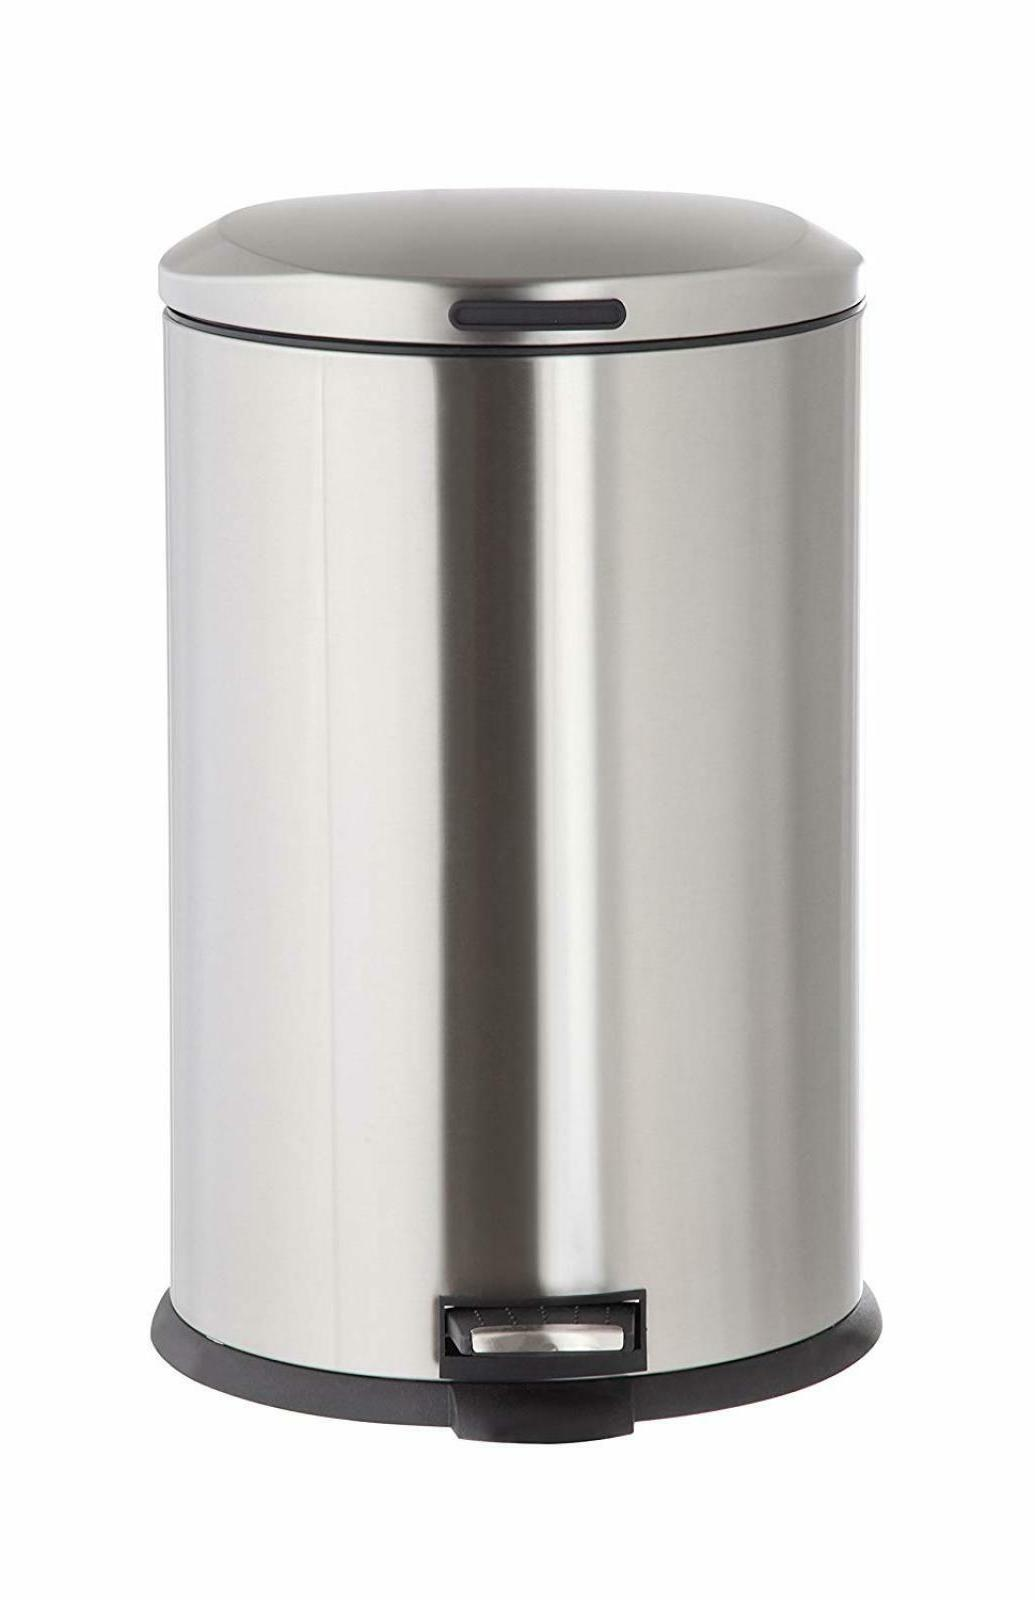 Stainless Steel Garbage Can | Garbage-can.org